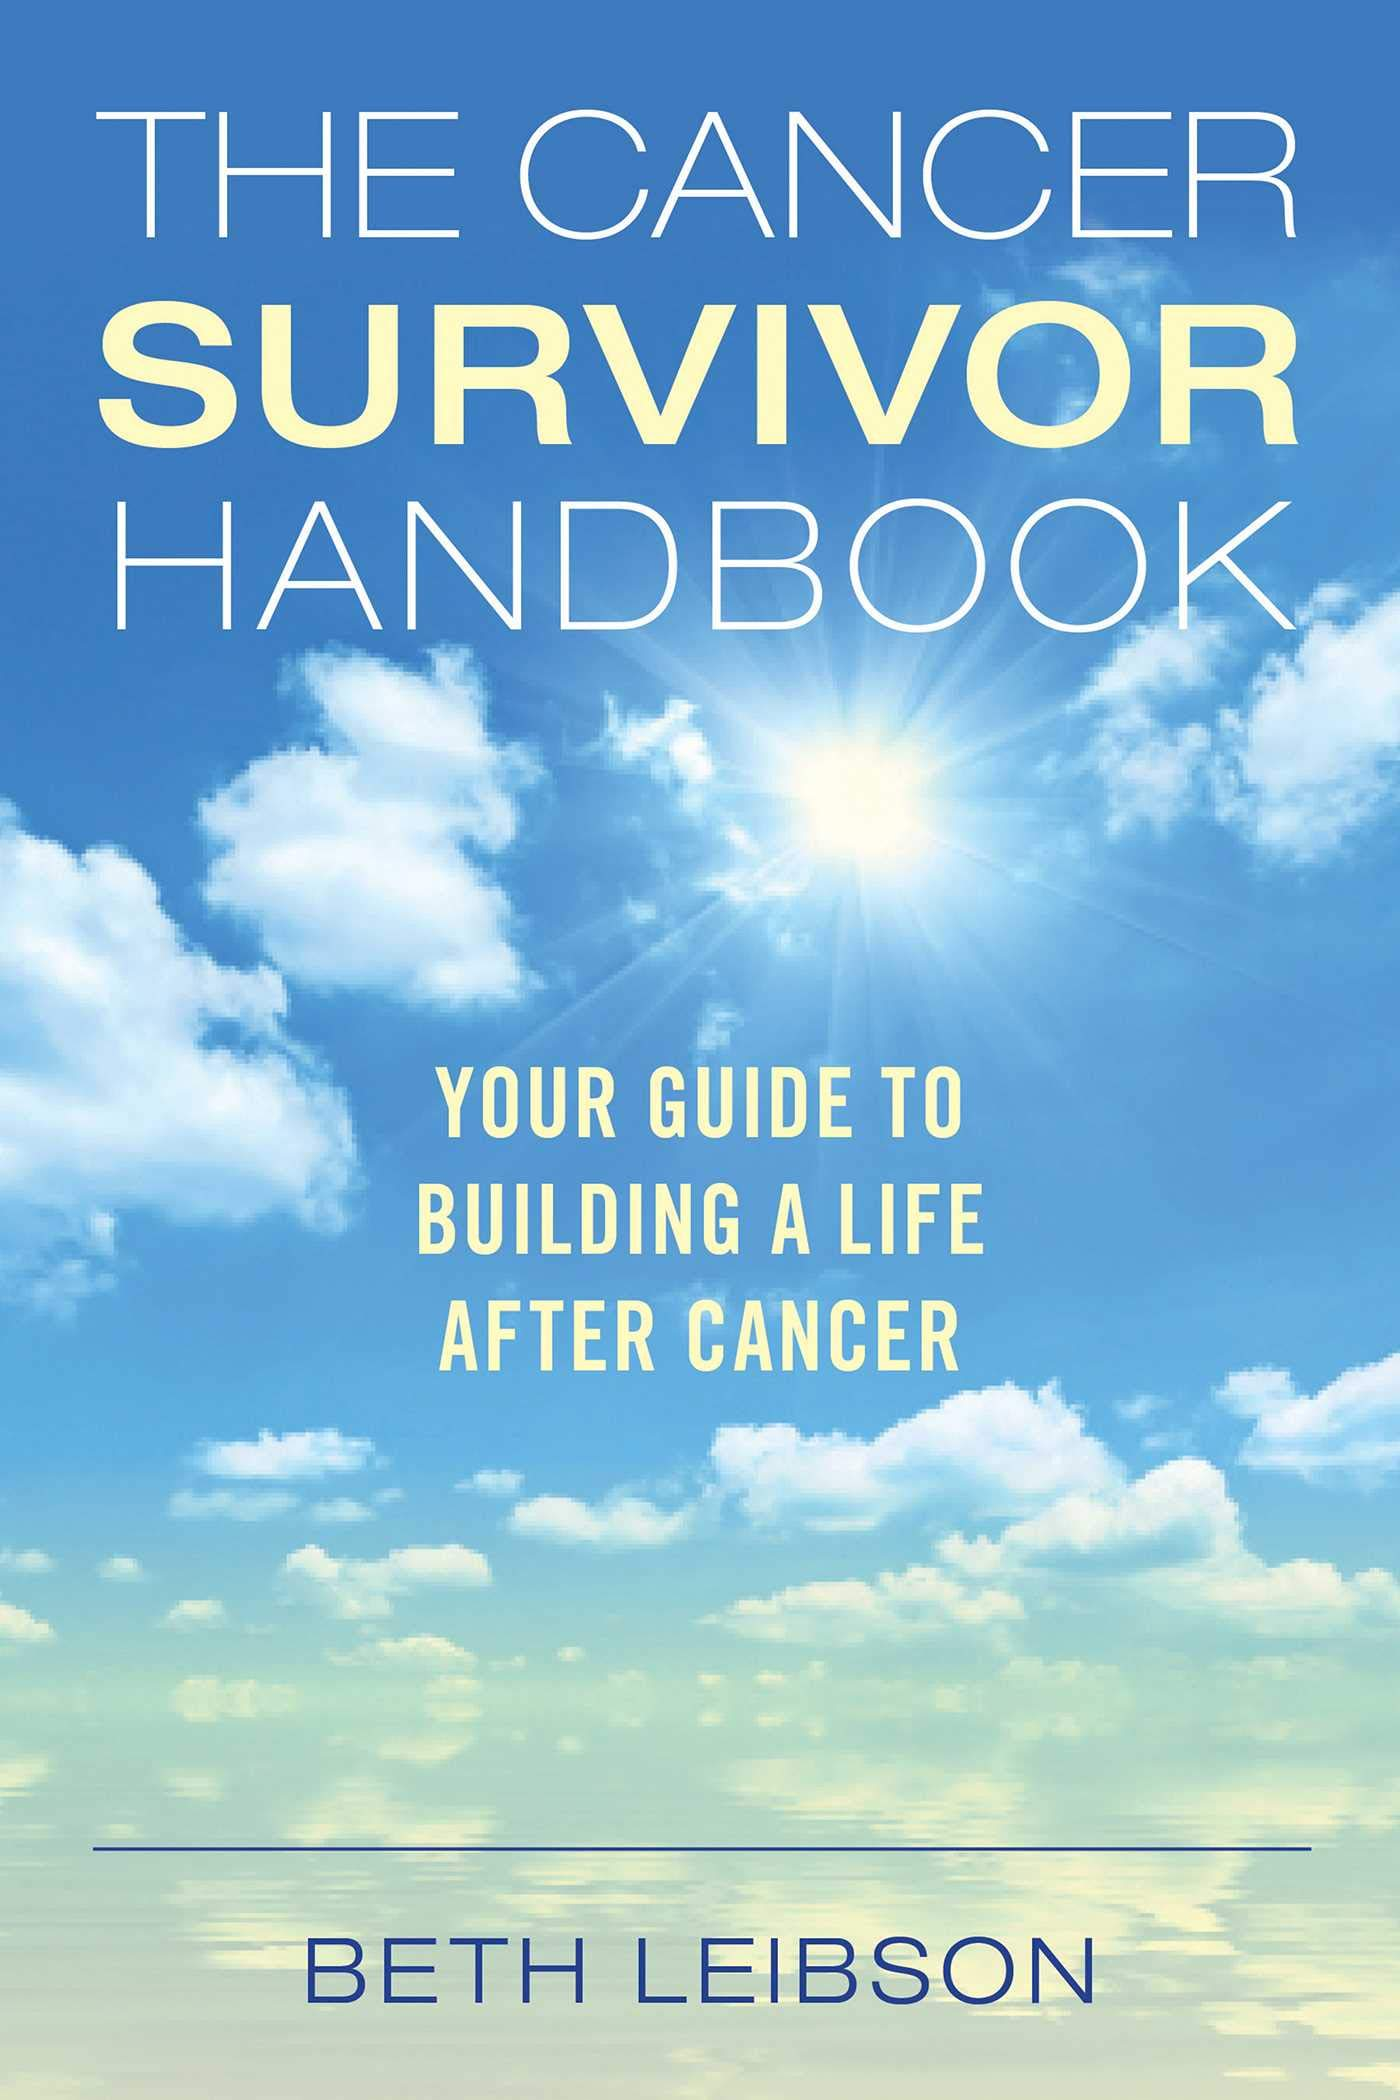 The Cancer Survivor Handbook: Your Guide to Building a Life After Cancer